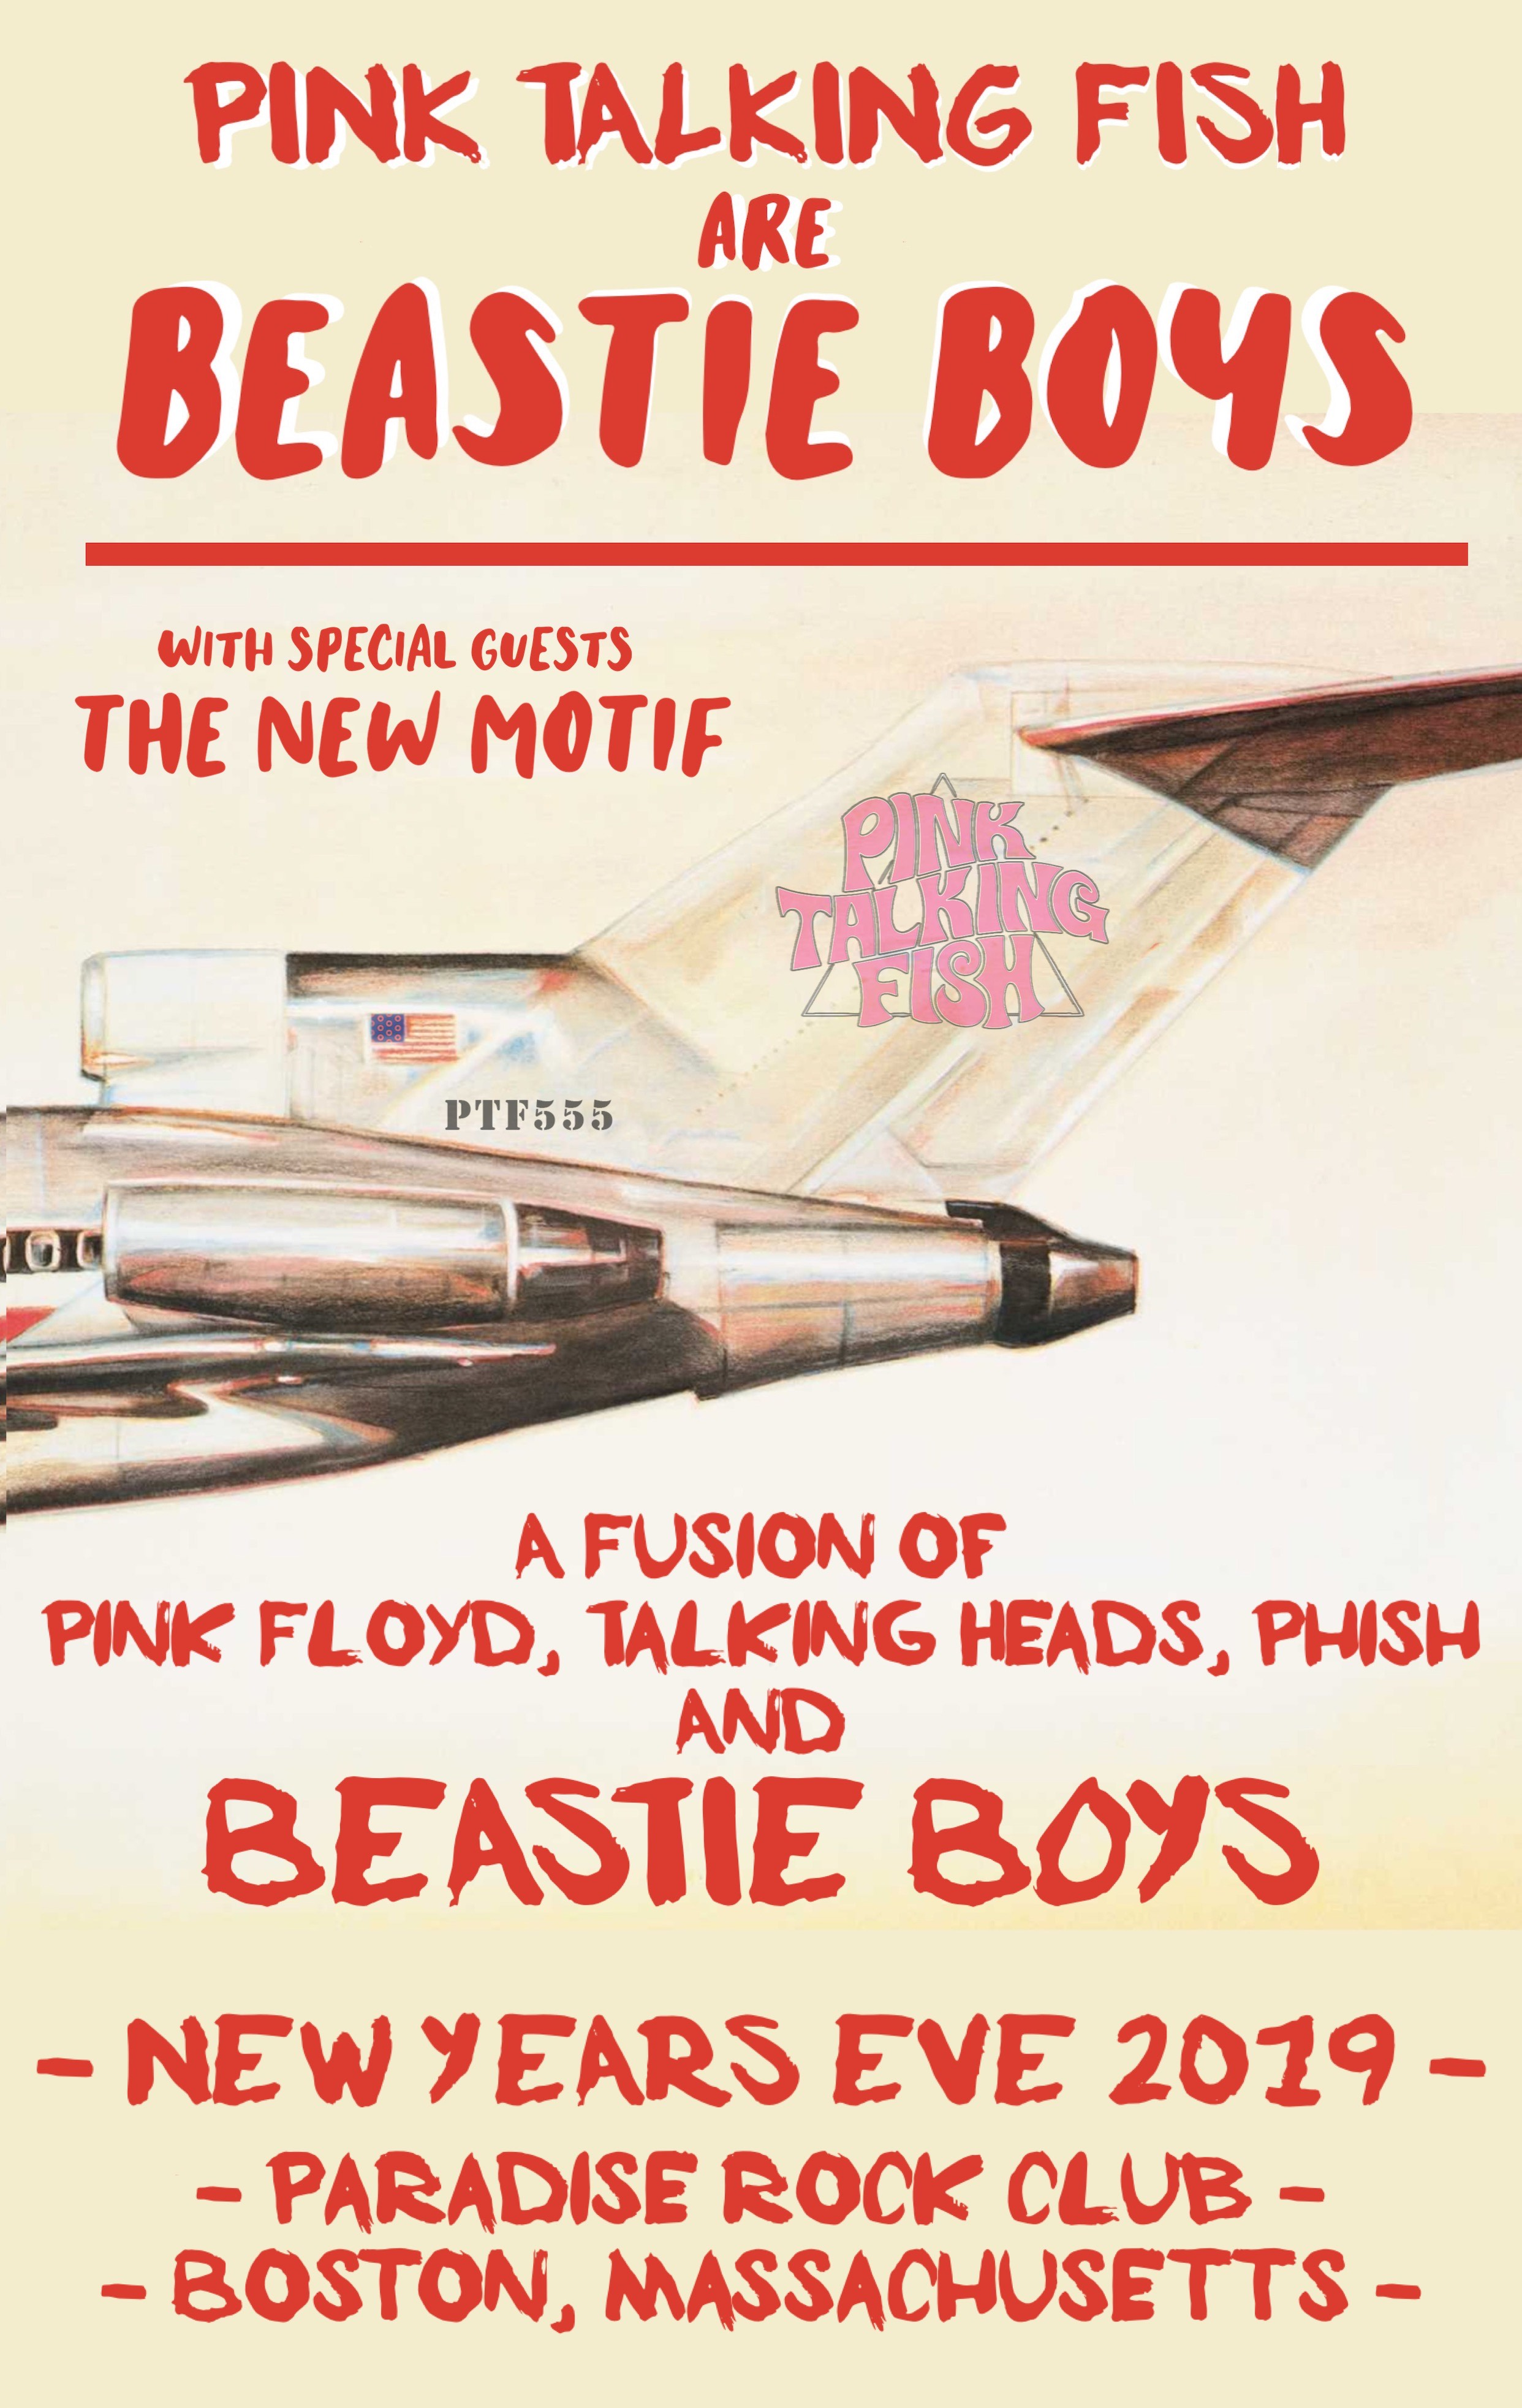 Pink Talking Fish Debuts Beastie Boys Concept as a Surprise in San Diego and Announces New Year's Eve Concept Performance